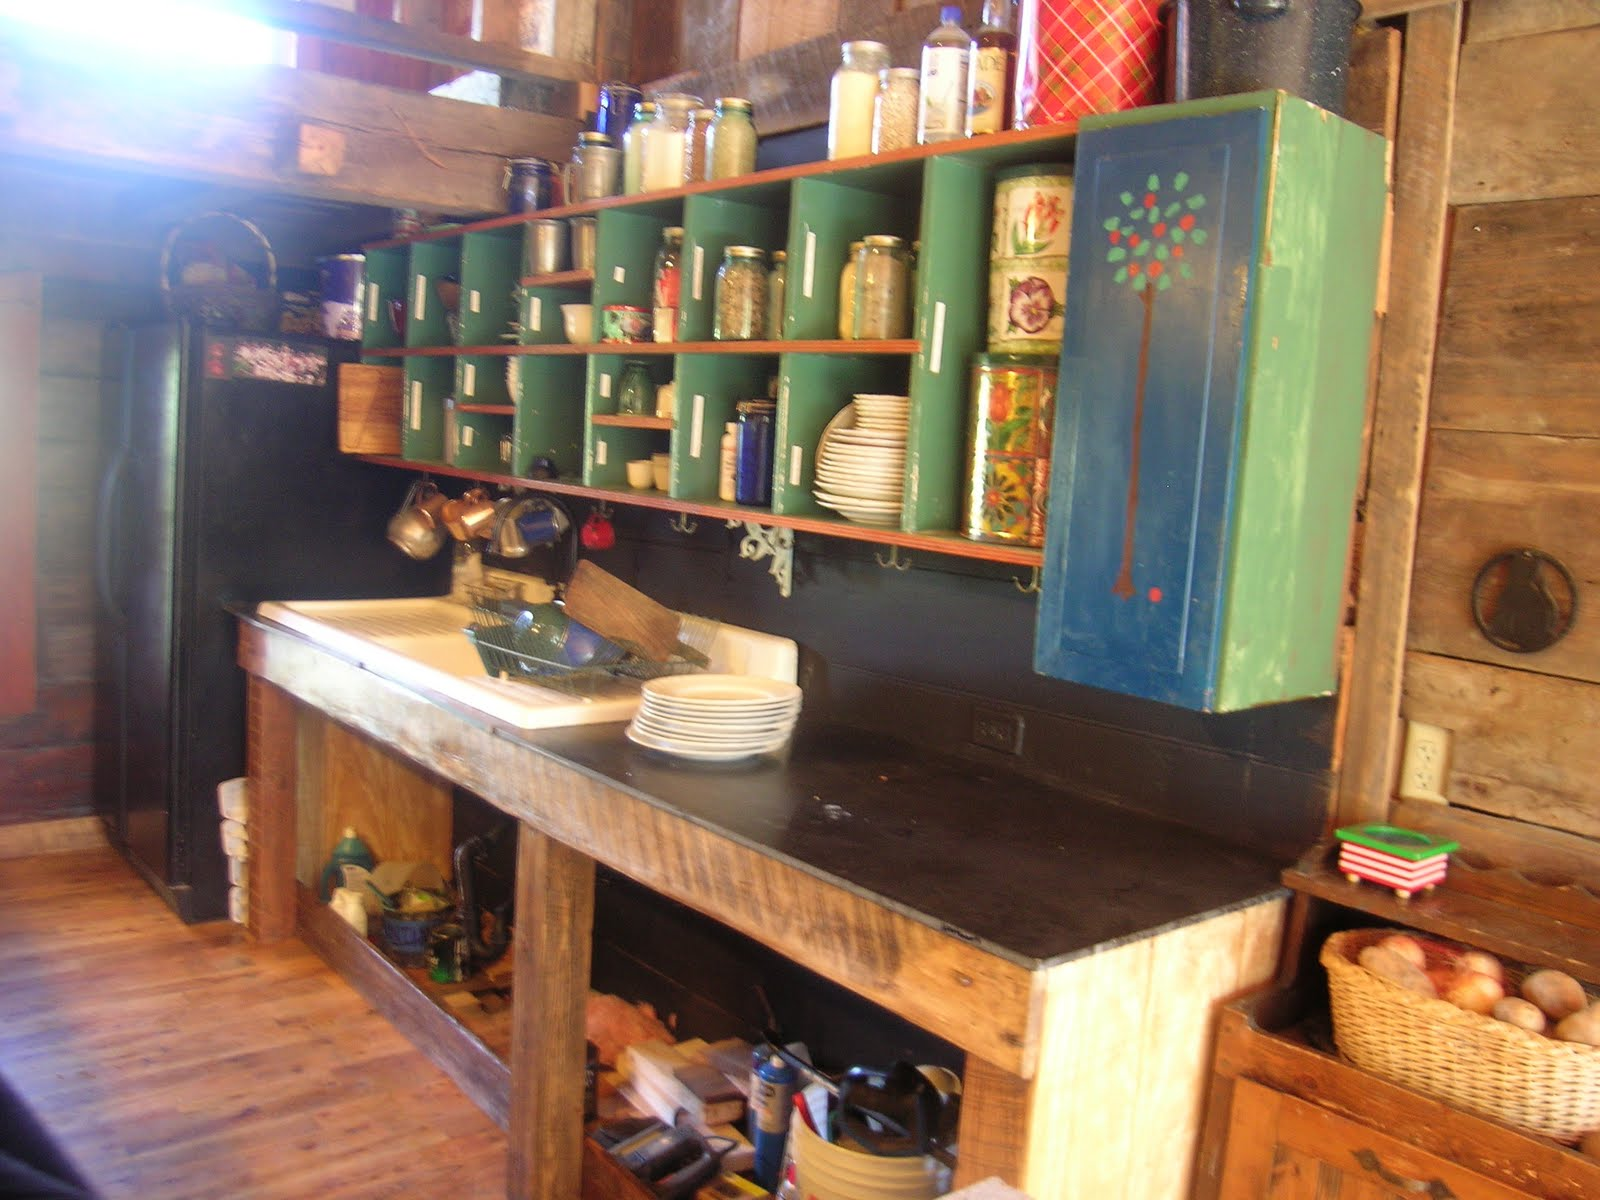 House Art Journal: Homemade Sink Cabinet